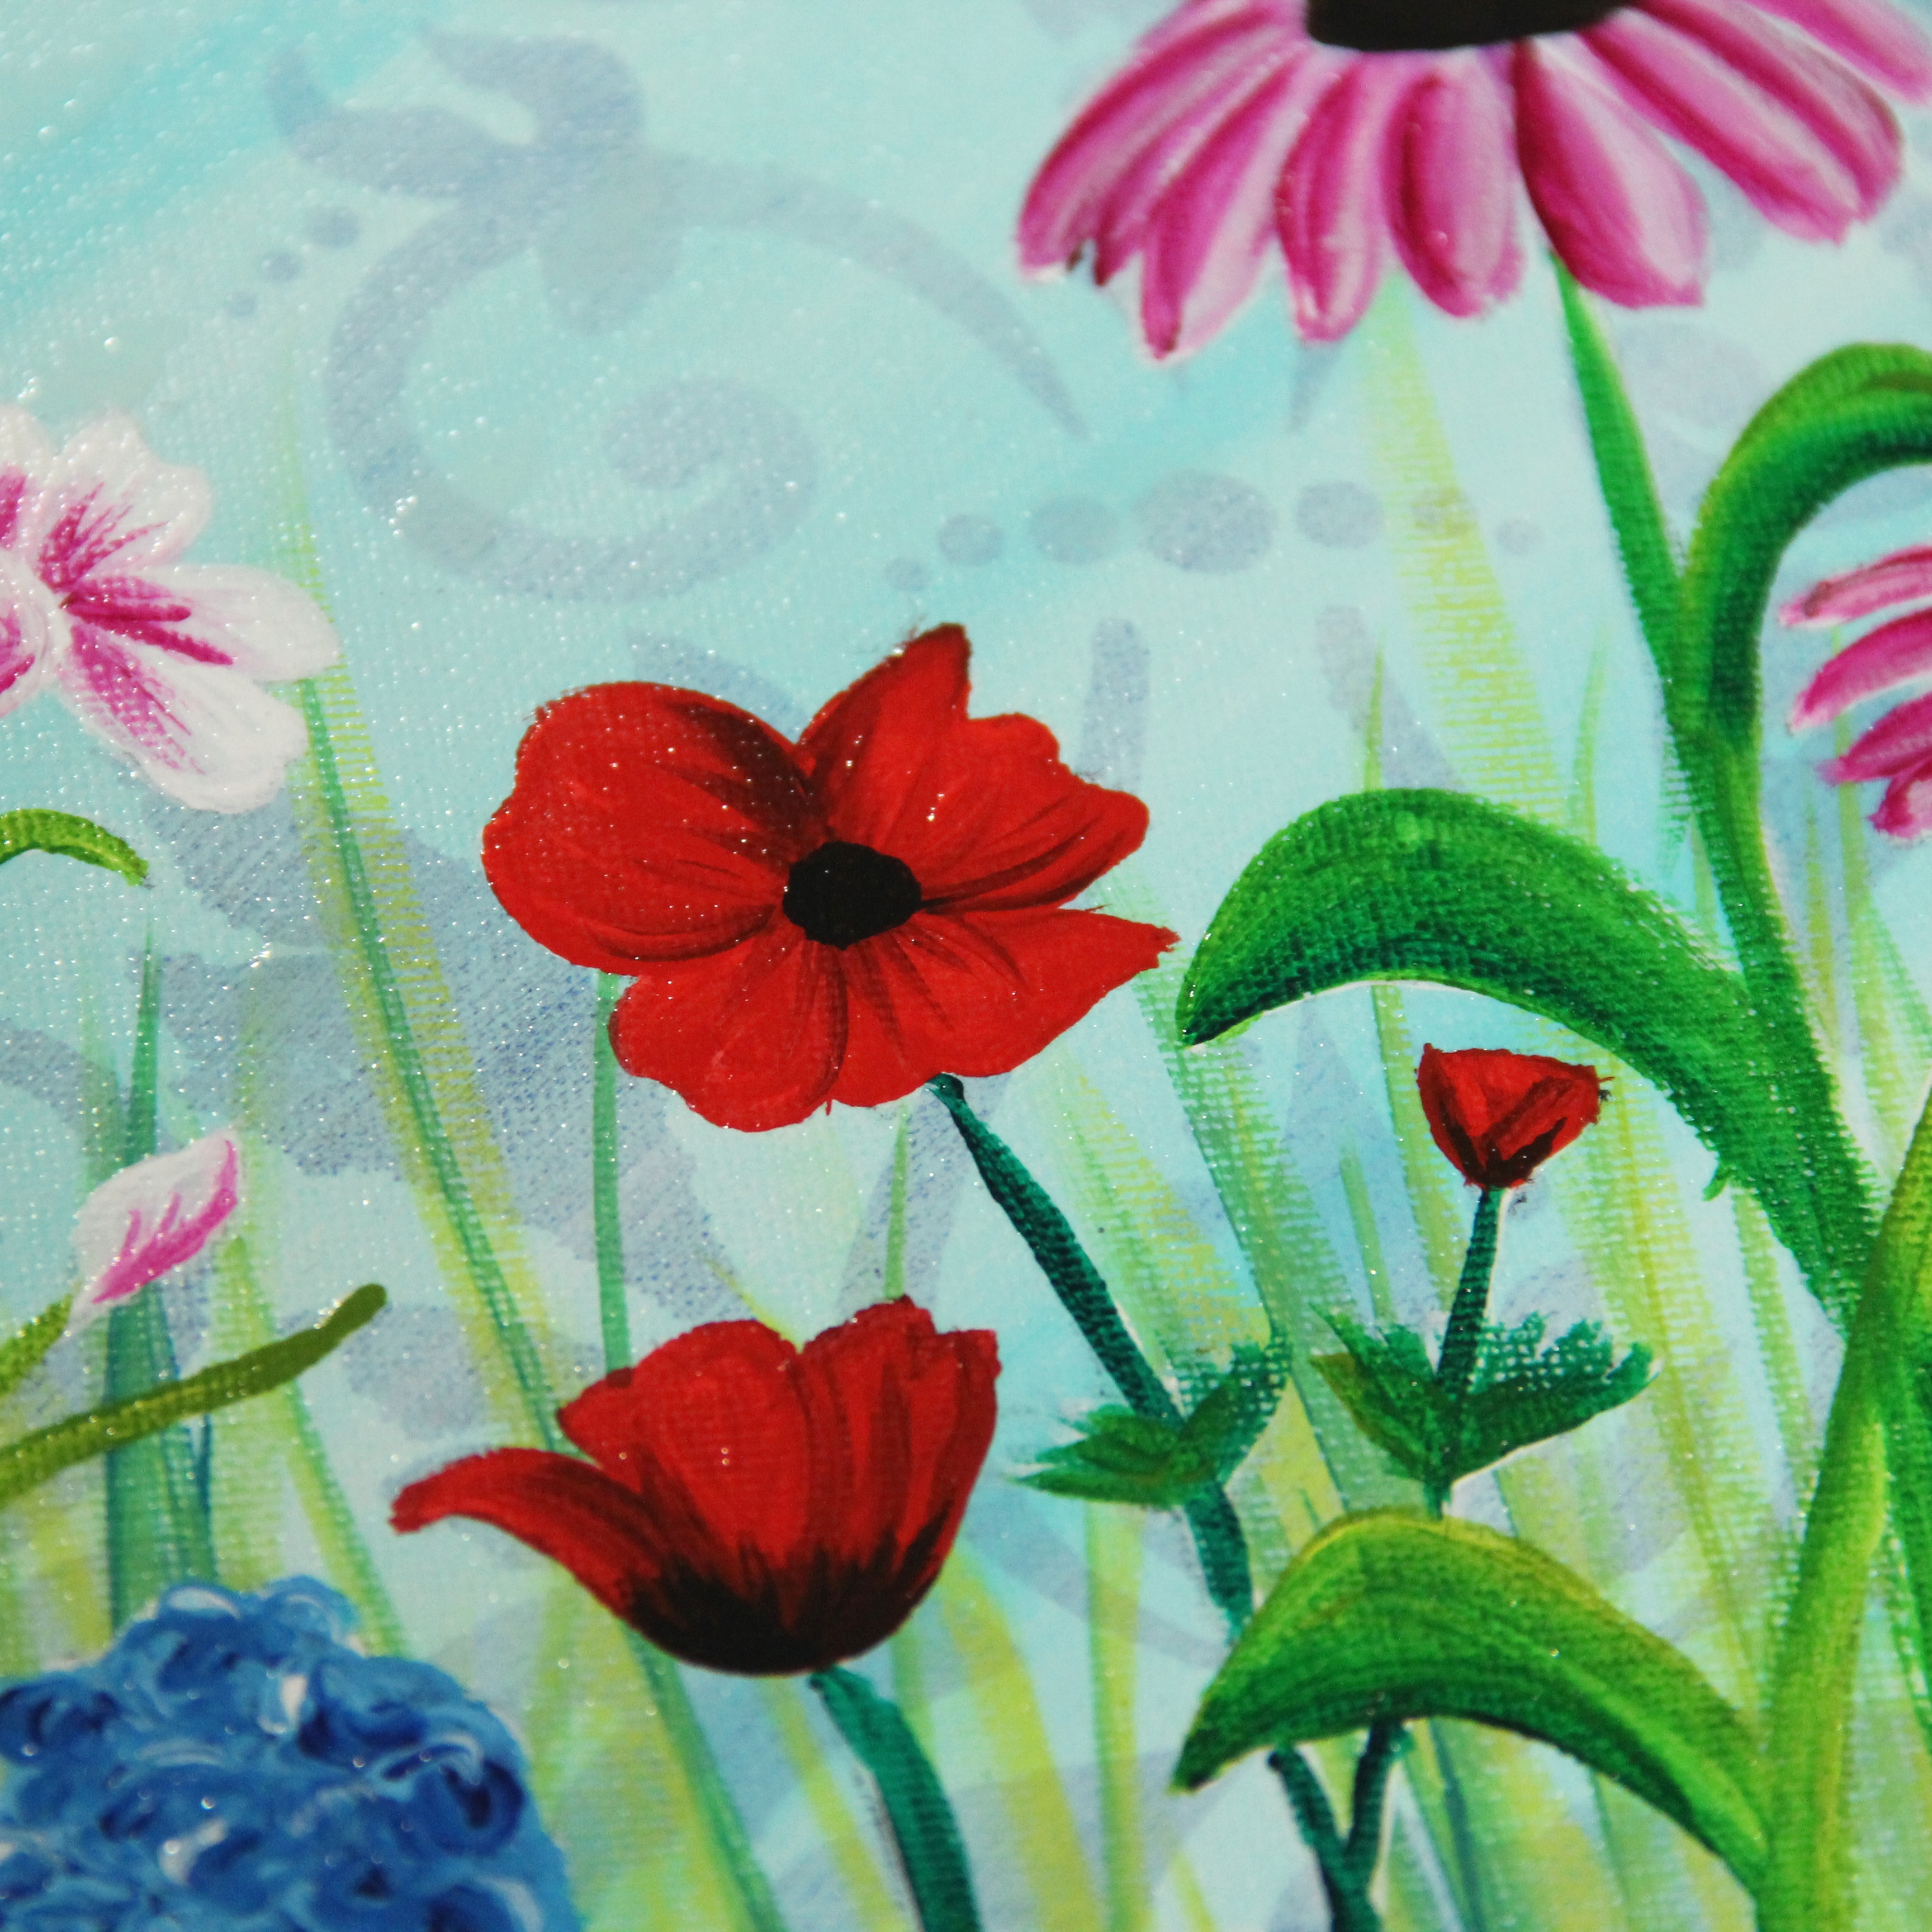 Blooming Colorful Flower Canvas - Project by DecoArt